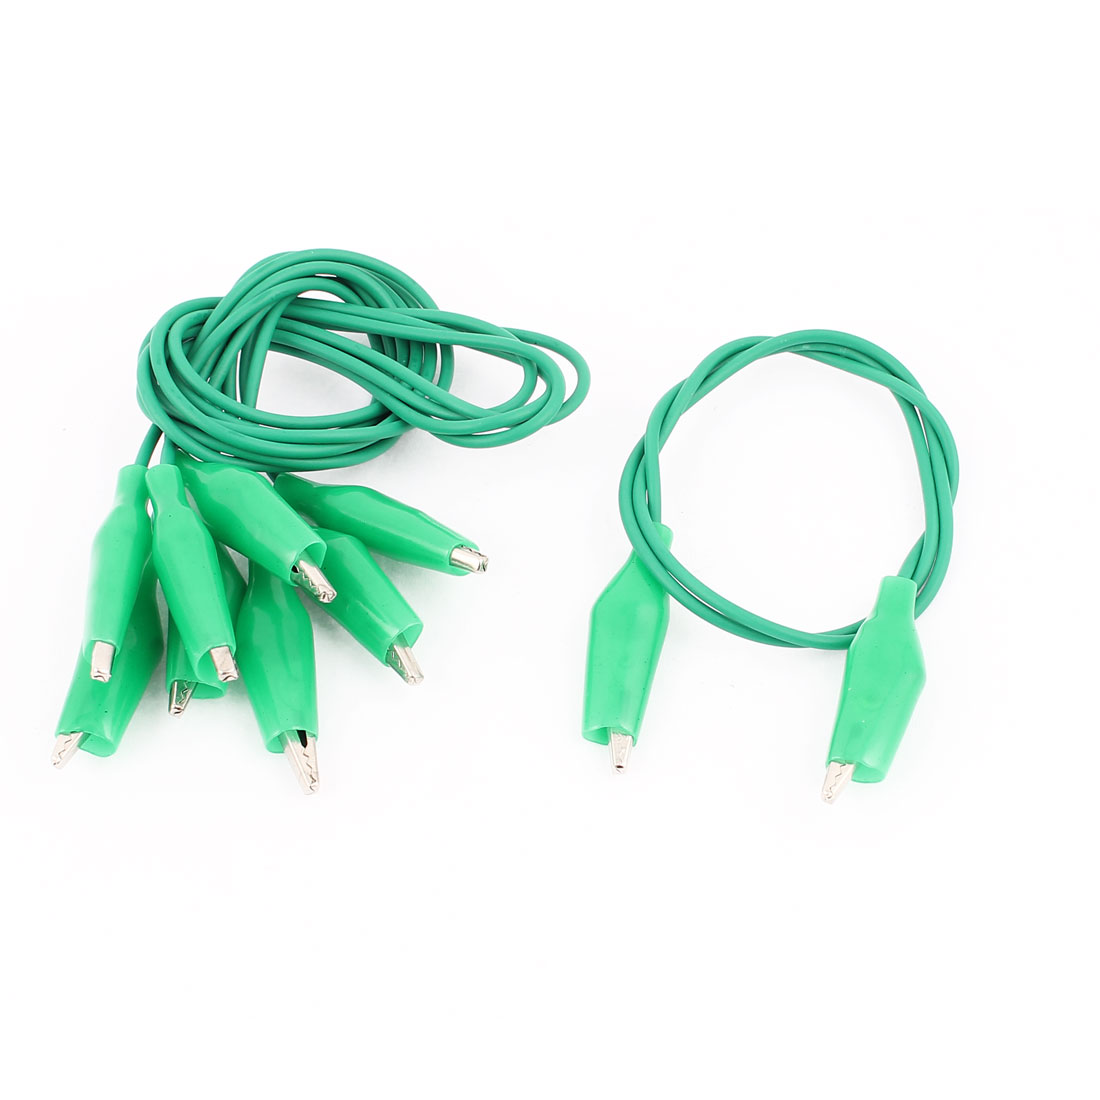 4pcs Green Insulated Dual Ended Testing Test Leads Alligator Clip Jumper Wire Cable 47cm